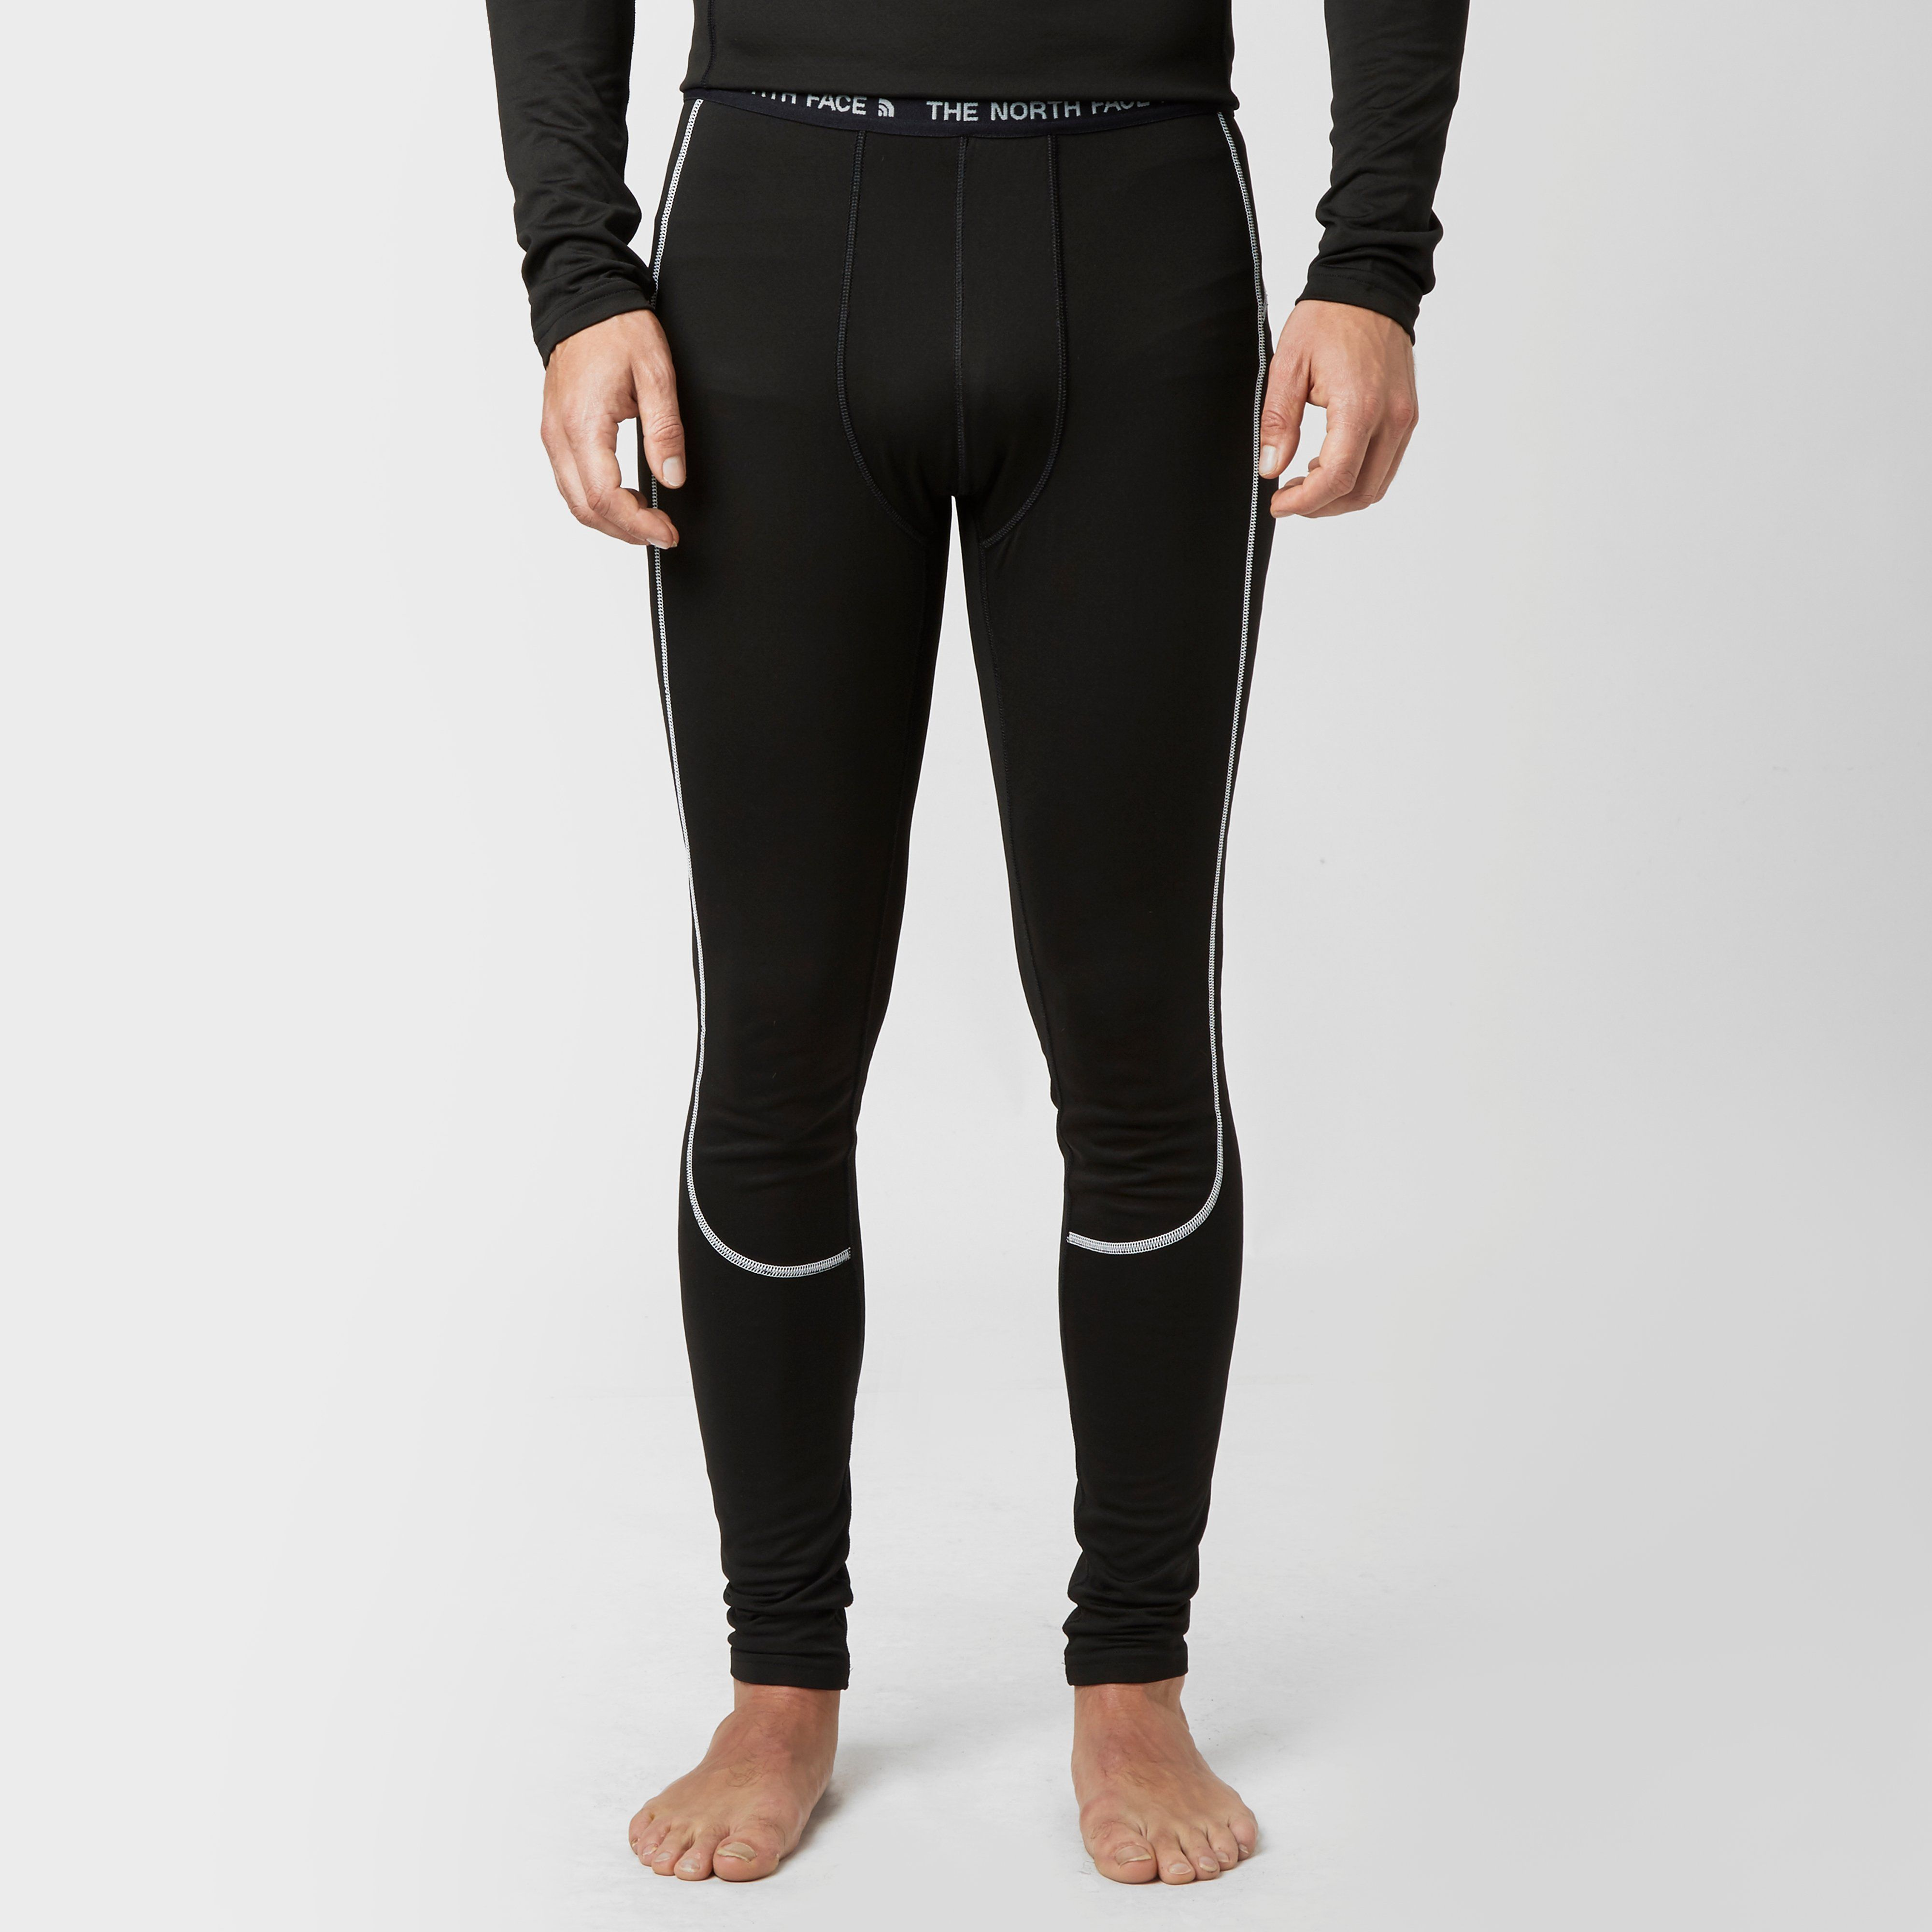 THE NORTH FACE Men's Warm Tights